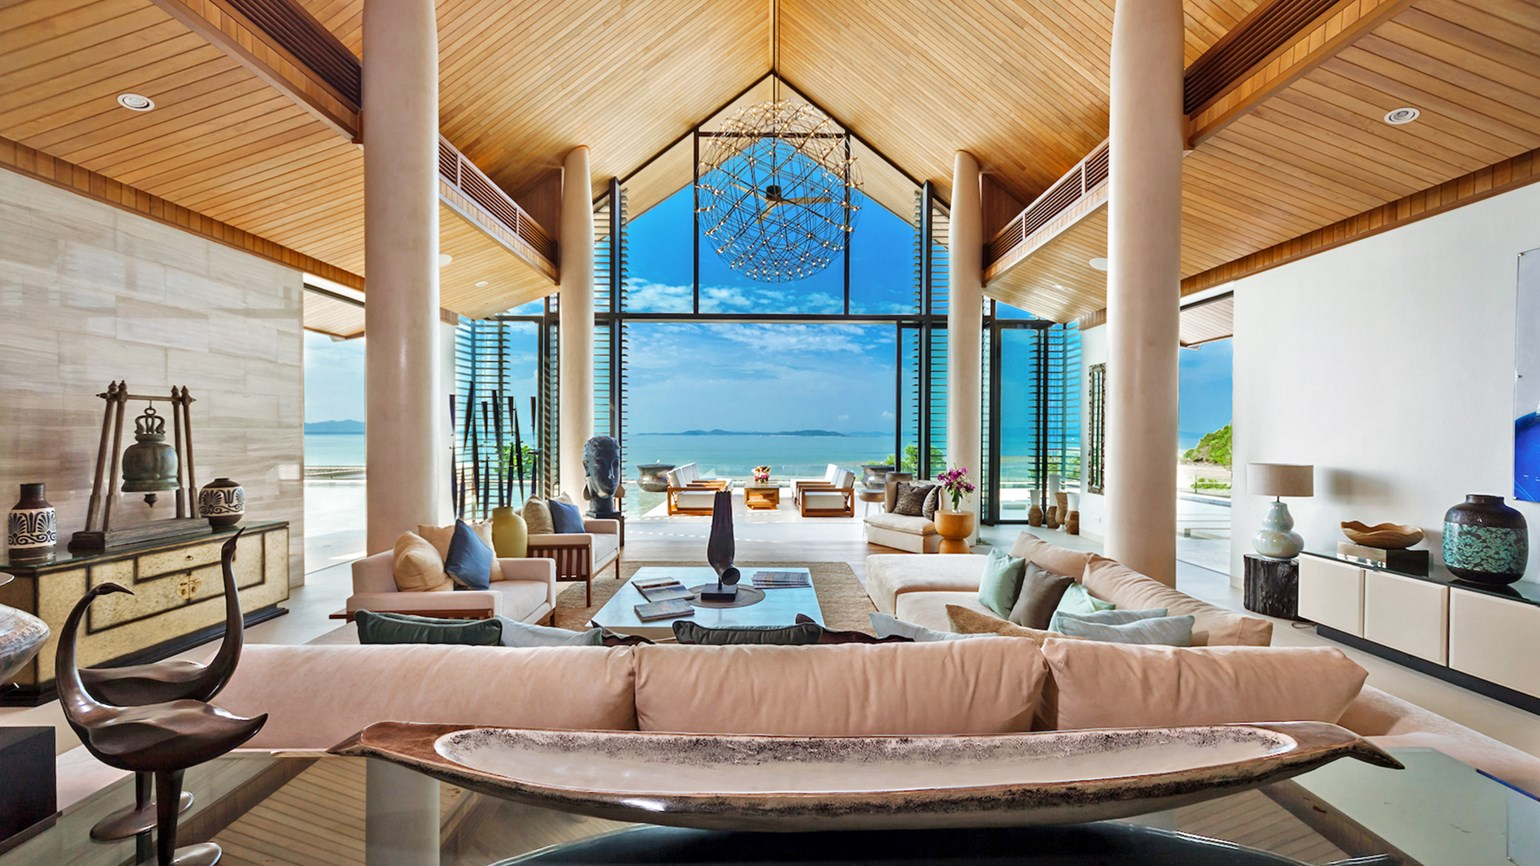 Luxury Retreats blurring the lines